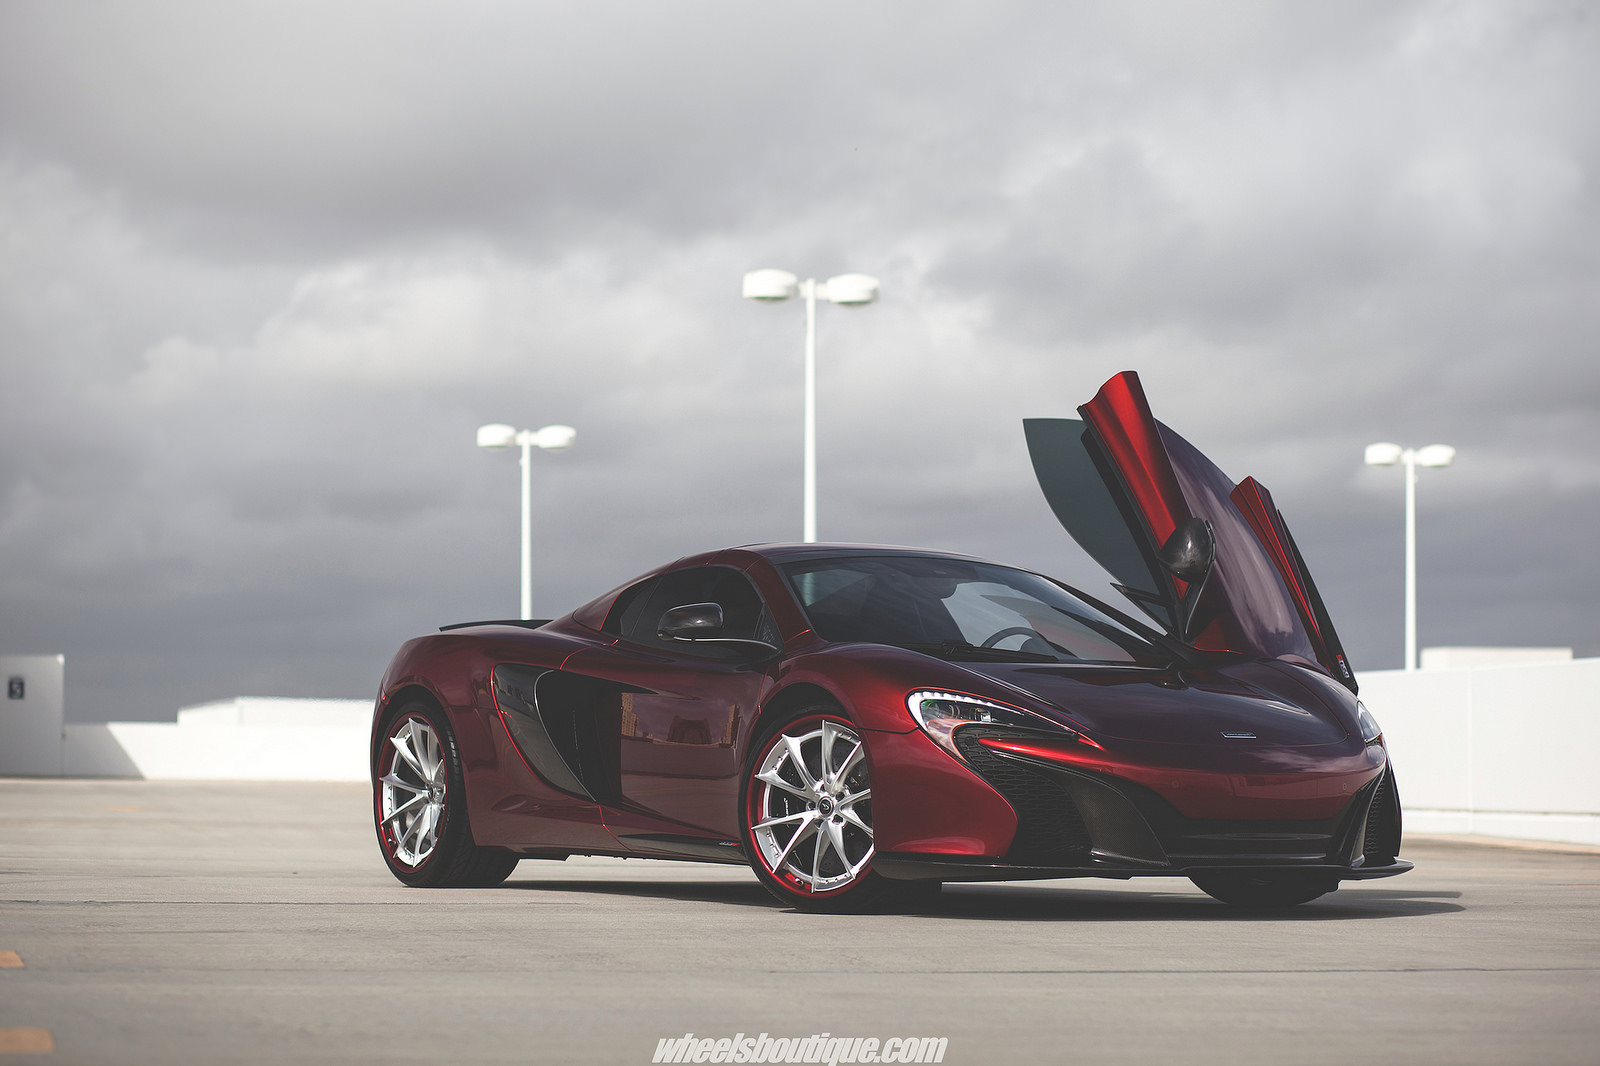 photo 4 McLaren 650S custom wheels HRE S204 20x9.0, ET , tire size 245/30 R20. 21x12.5 ET 325/25 R21